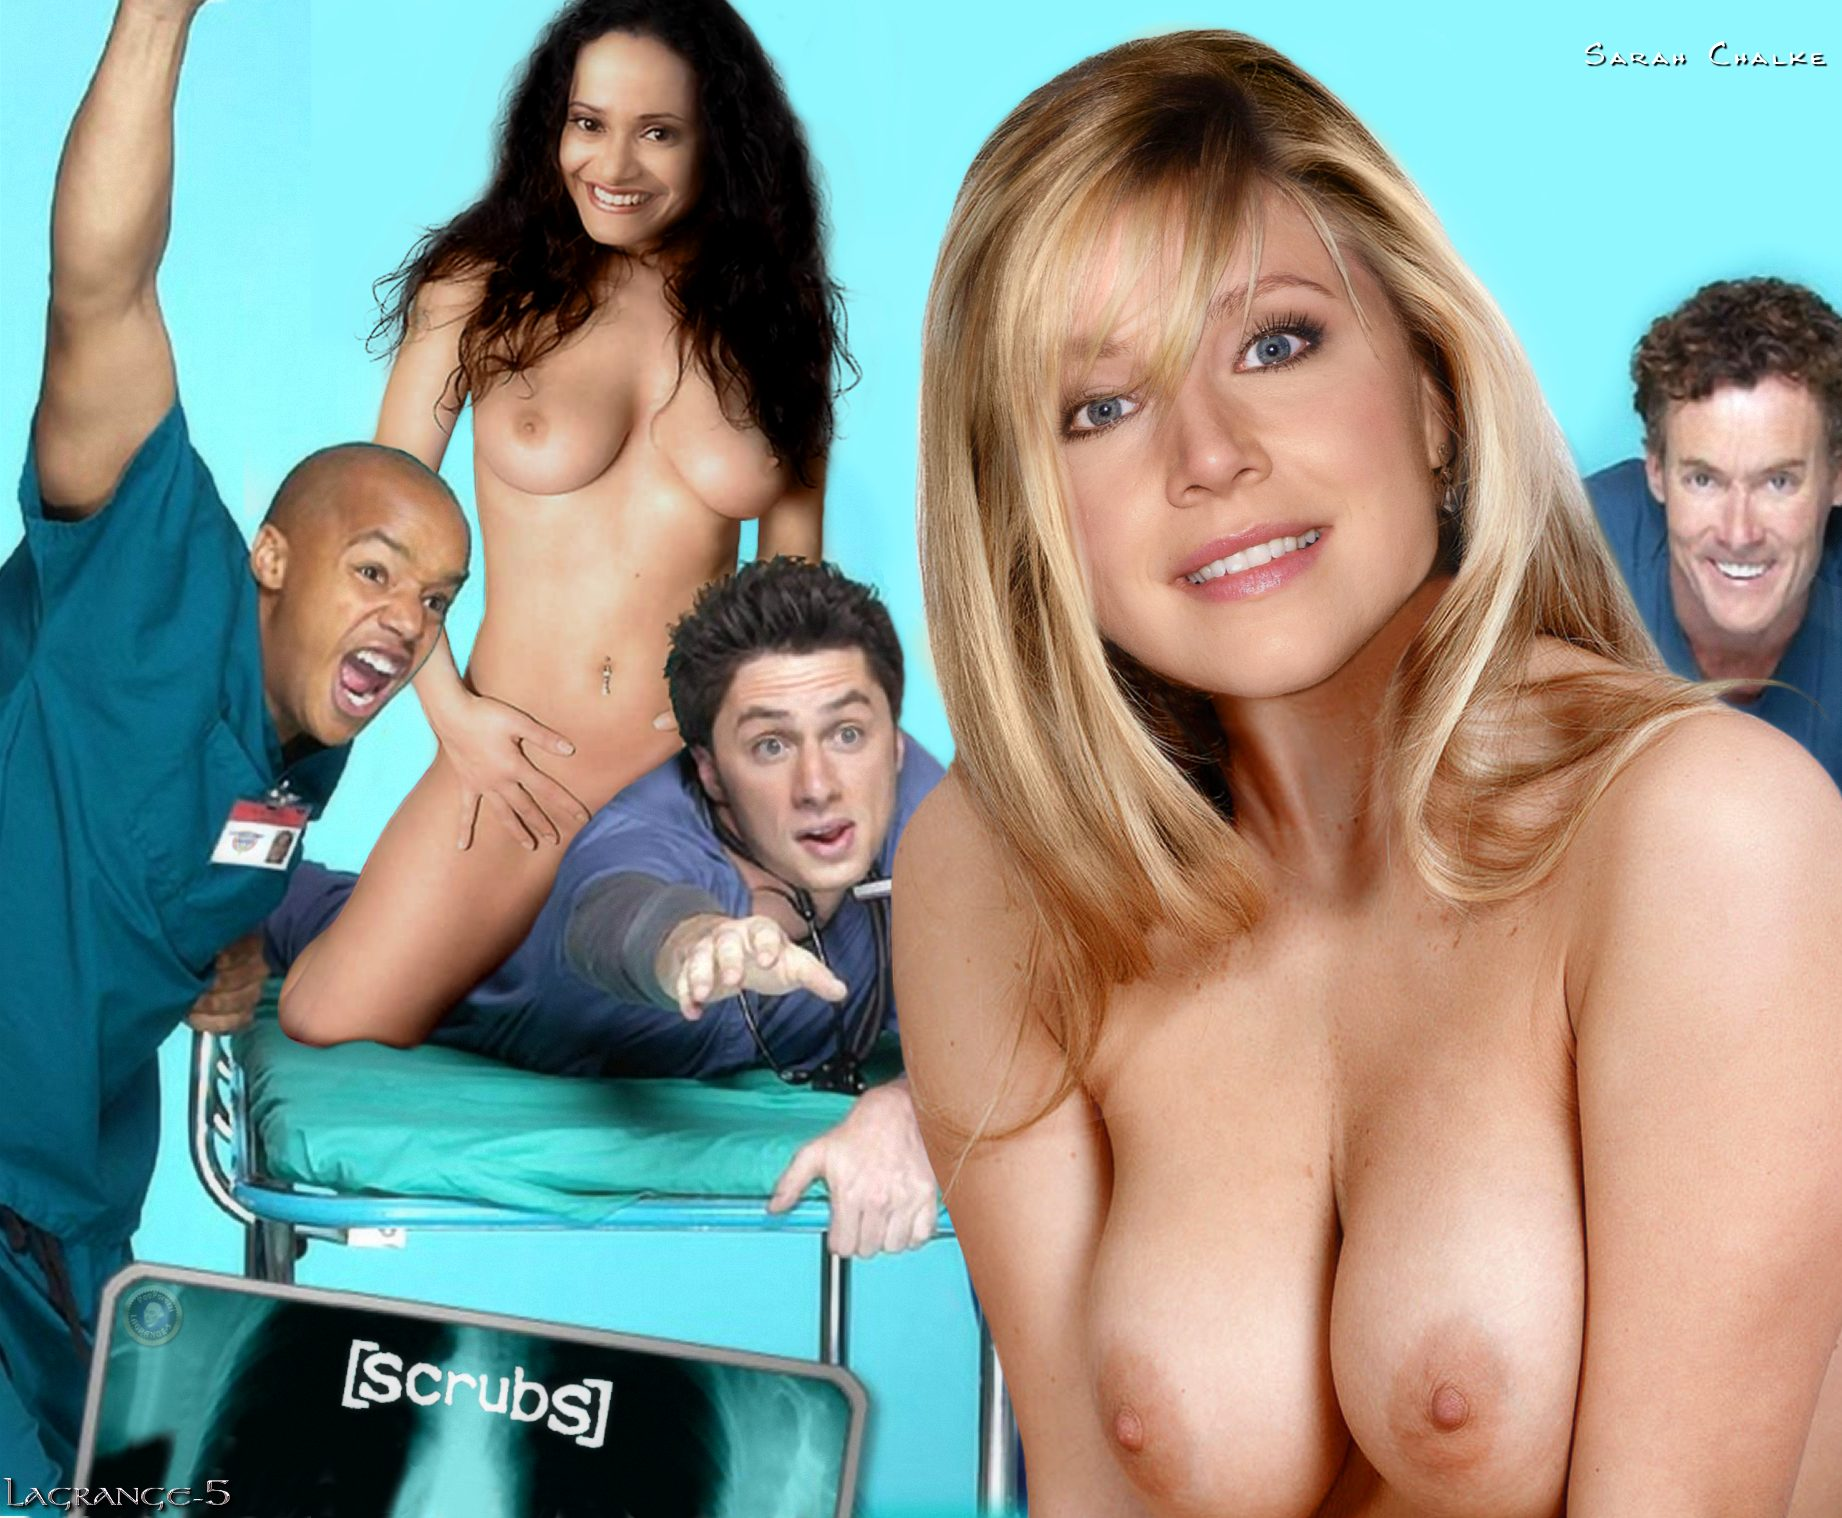 blonde-from-scrubs-naked